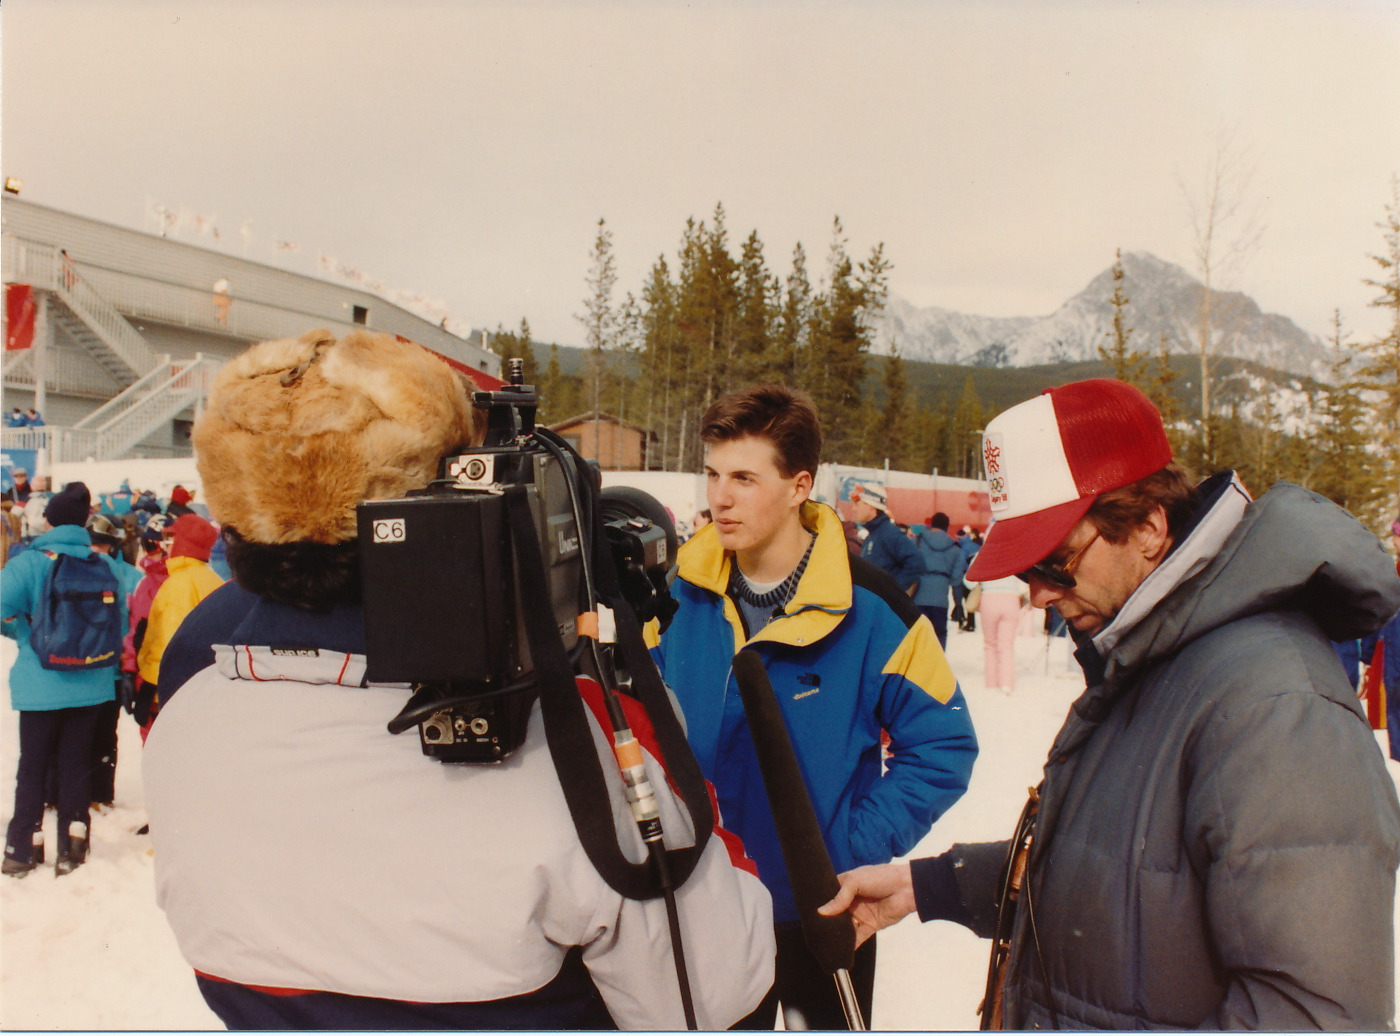 Jeff at the Calgary Winter Olympics